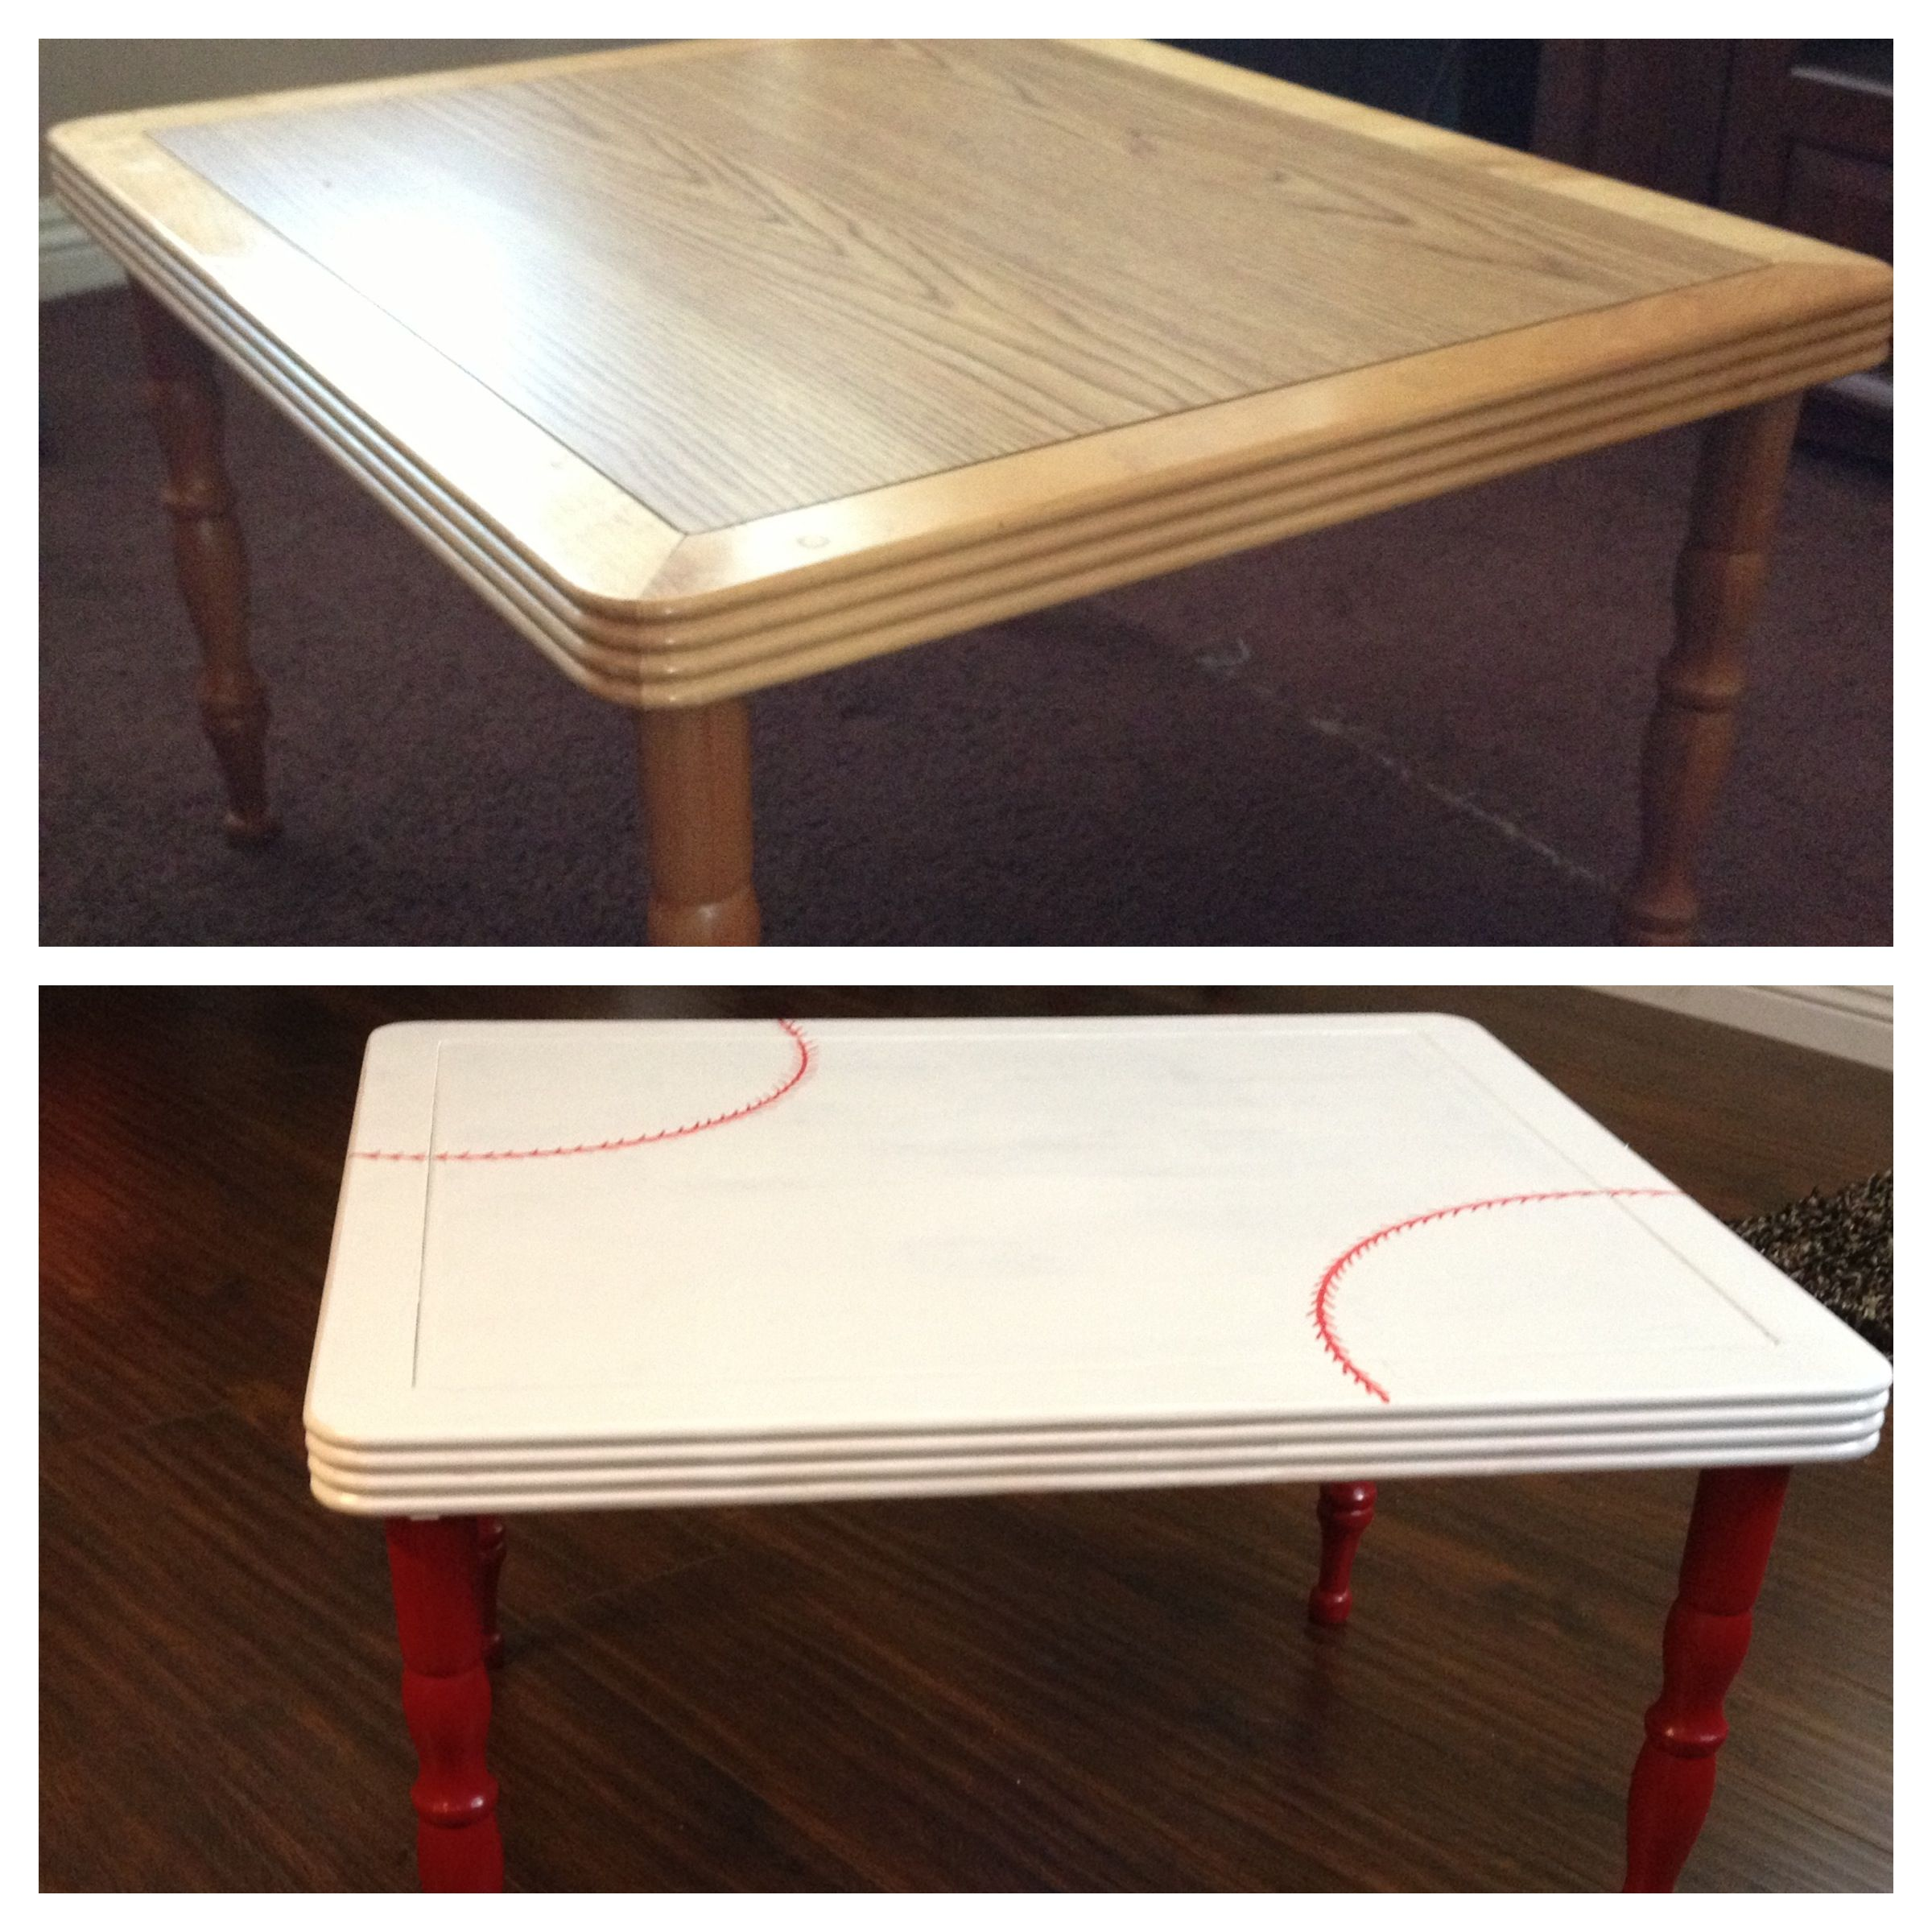 Table was free and had white and red paint on hand the only thing I paid for was a red sharpie to make the stitching lines.